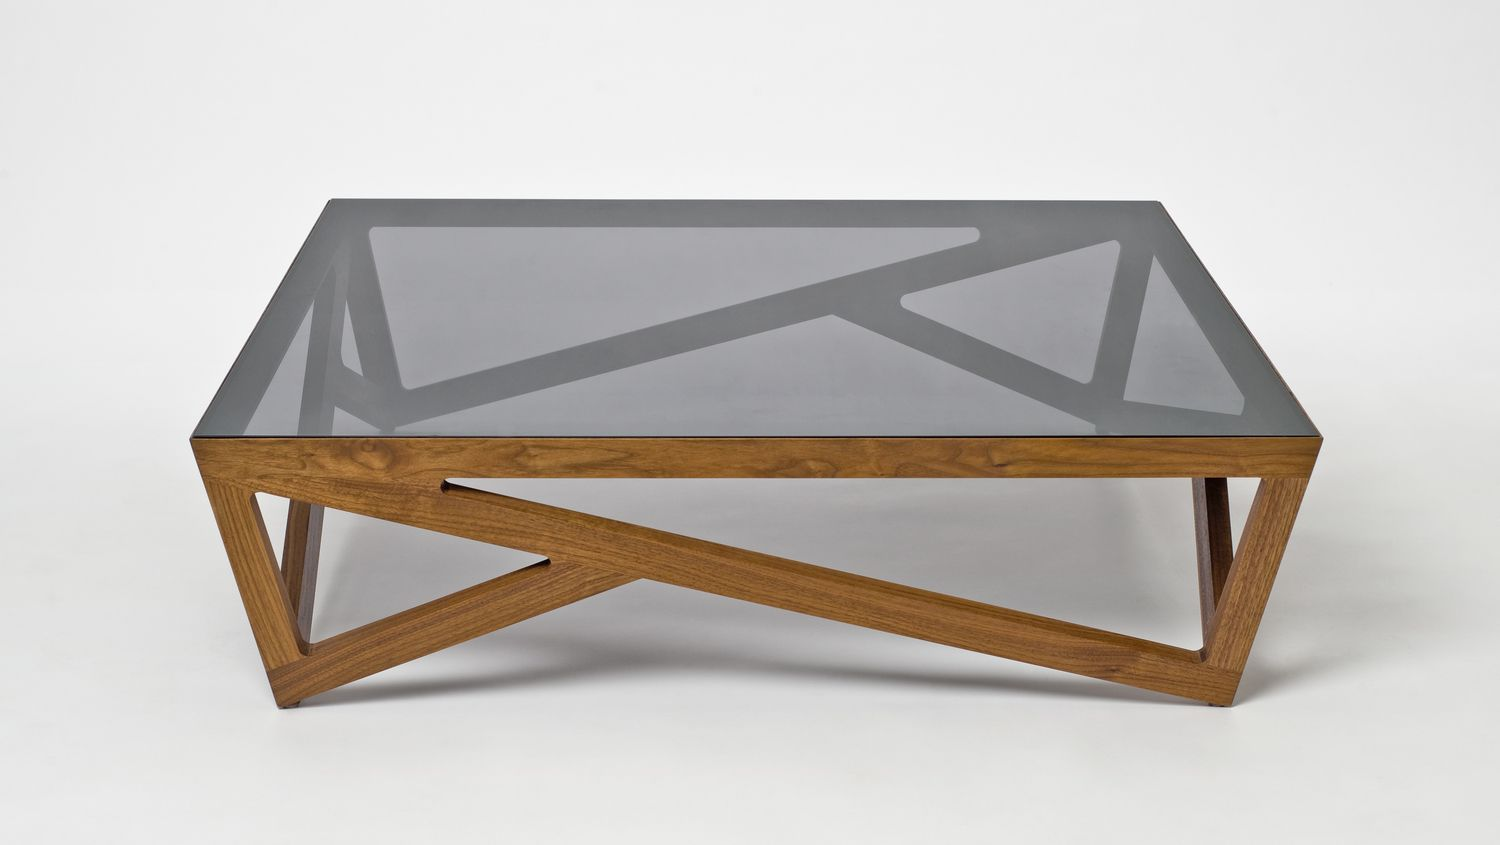 Simple In Appearance Yet Complex In Construction Painstakingly Shaped And Joined Solid Wood Supports A 1 Coffee Table Glass Wood Coffee Table Oak Coffee Table [ 845 x 1500 Pixel ]